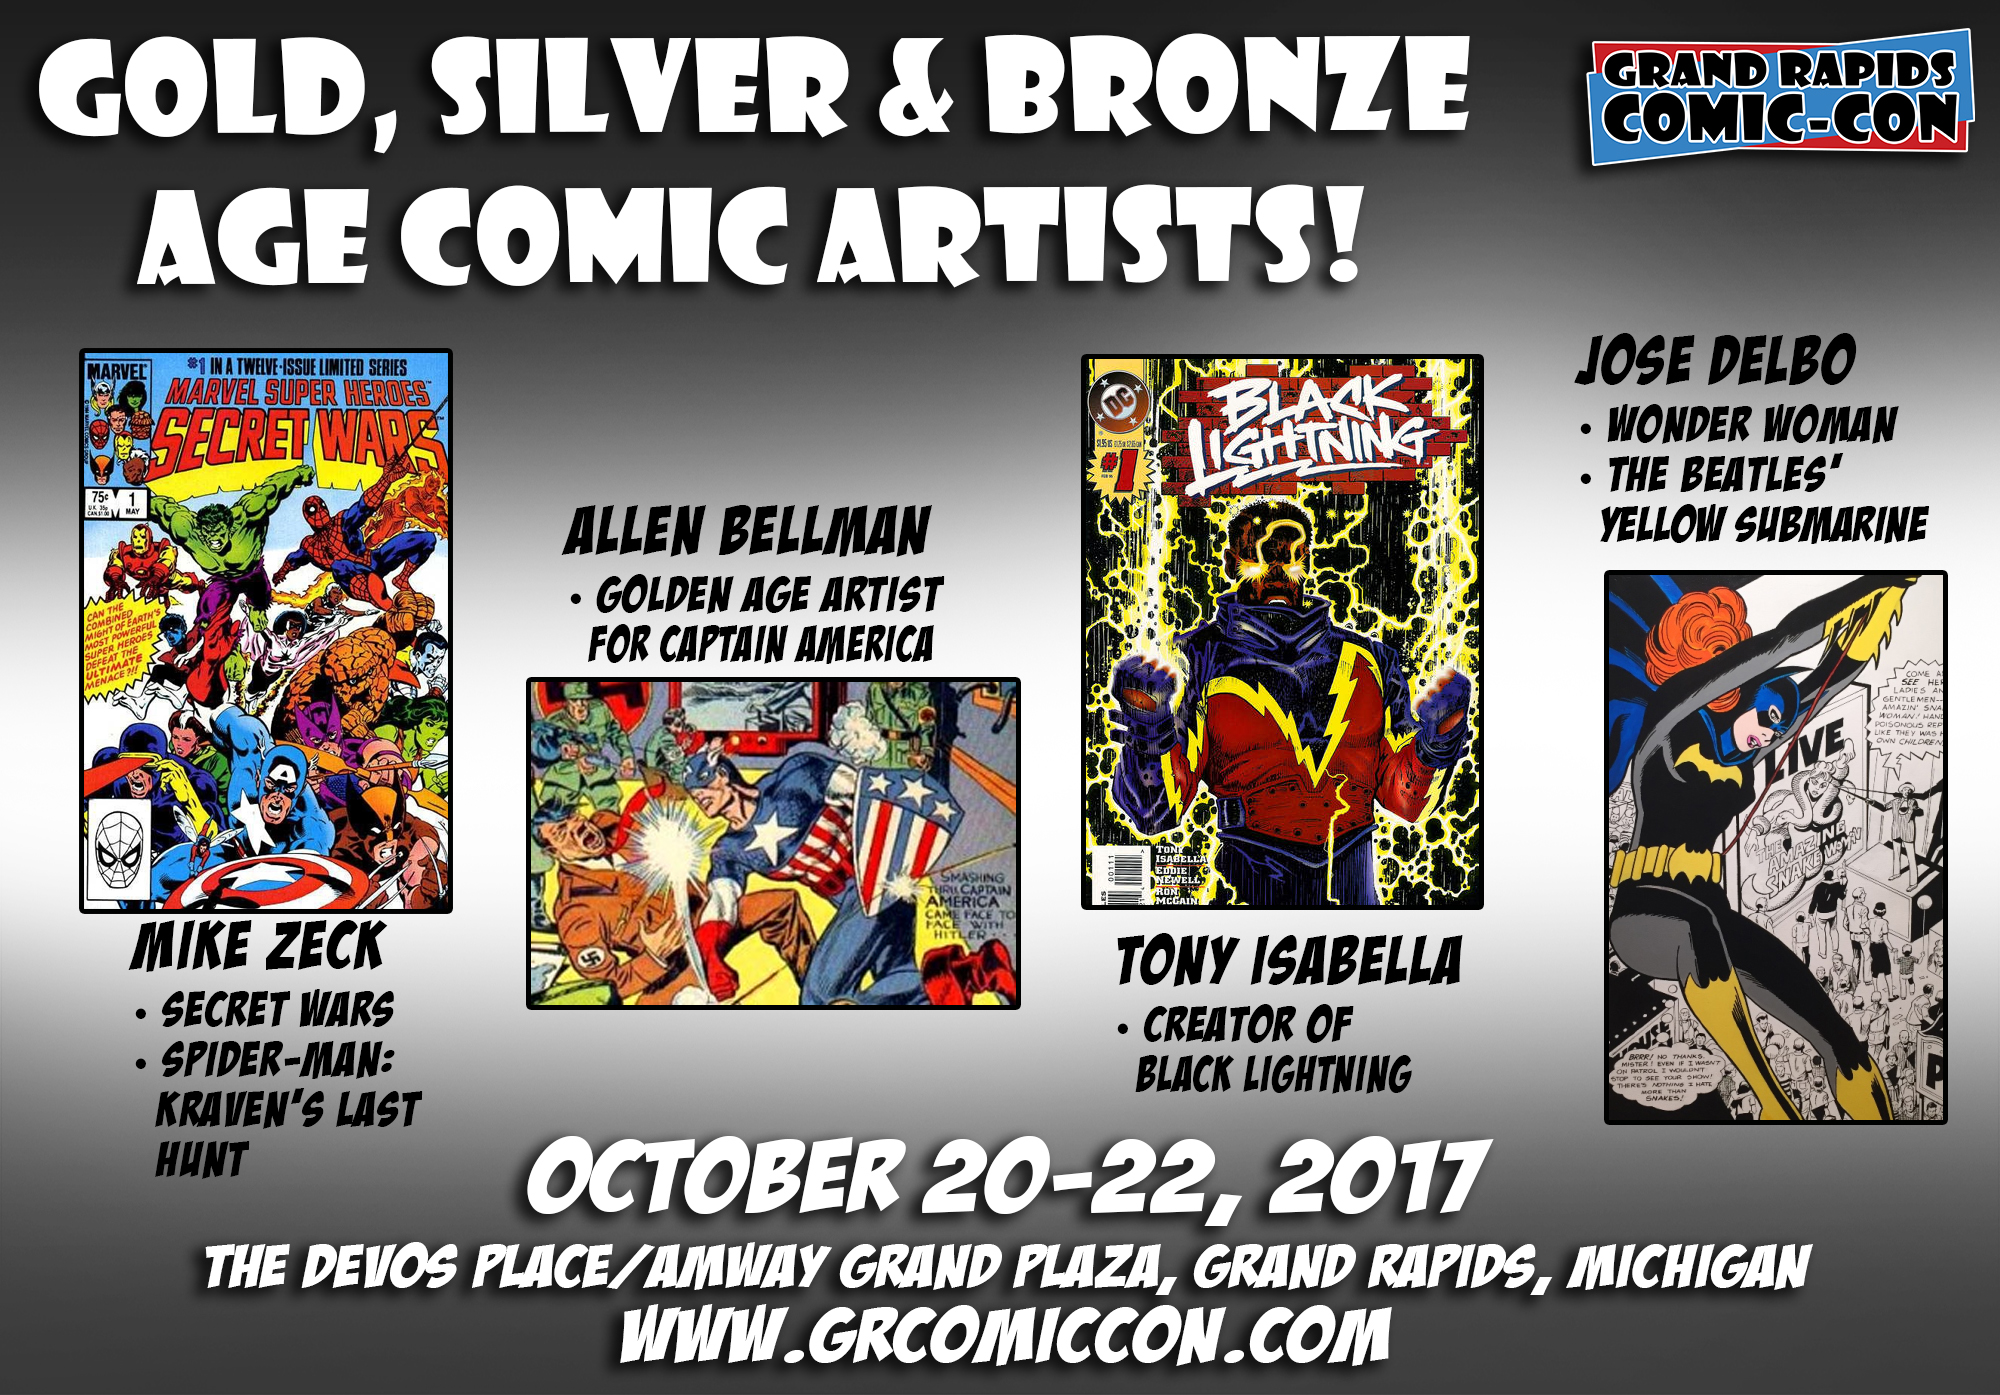 grand rapids comic con october 20 22 2017 at the devos place ultimate responsive image slider plugin powered by weblizar